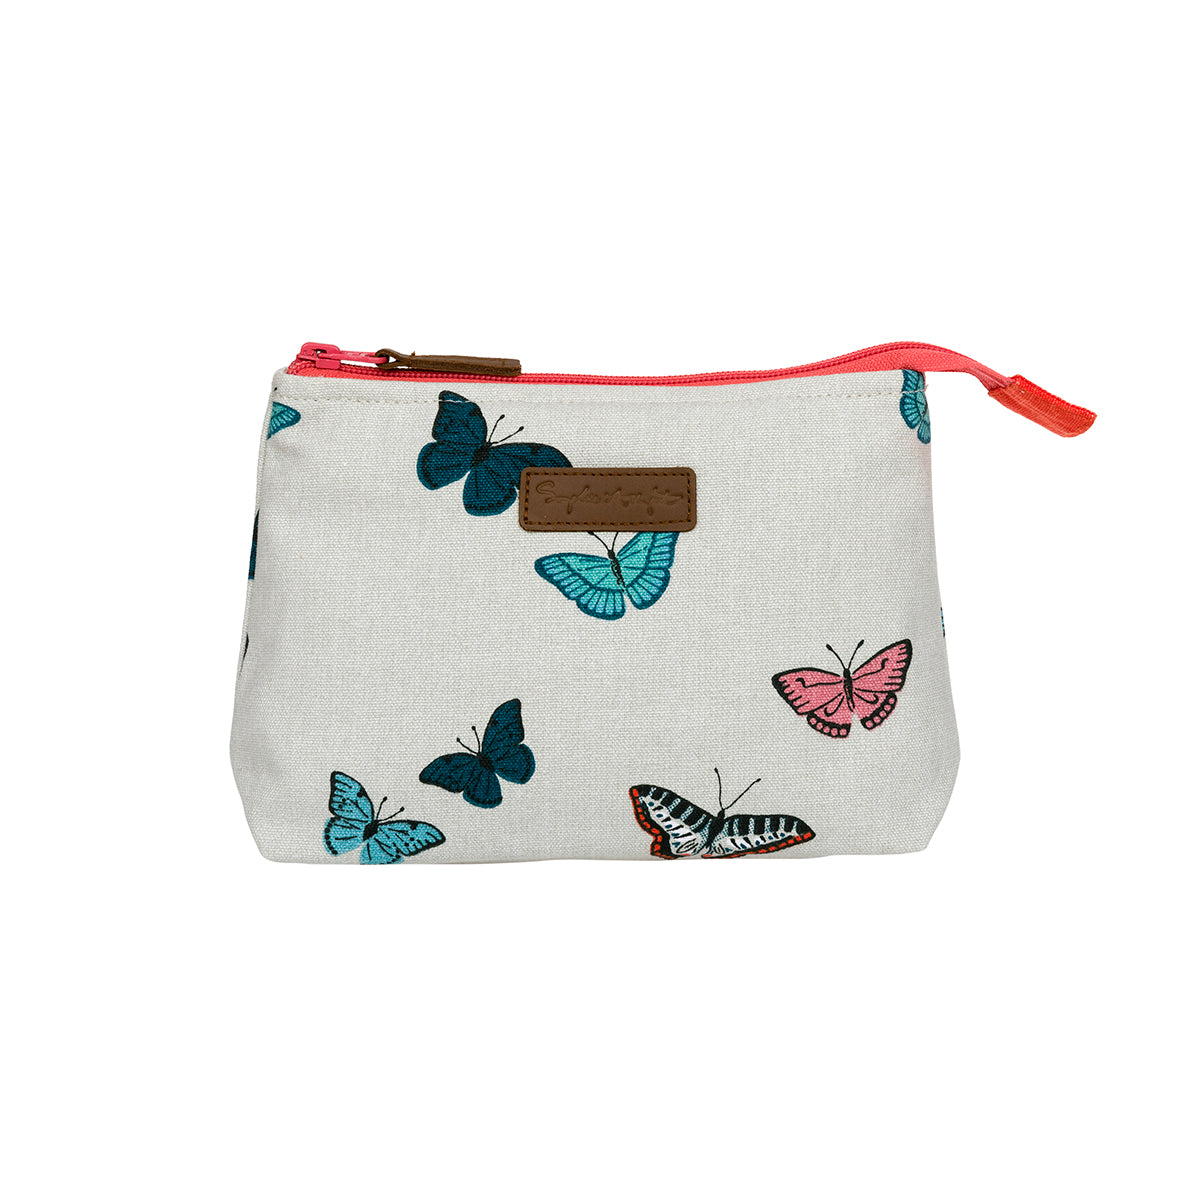 Makeup bag by Sophie Allport covered in colourful butterflies.